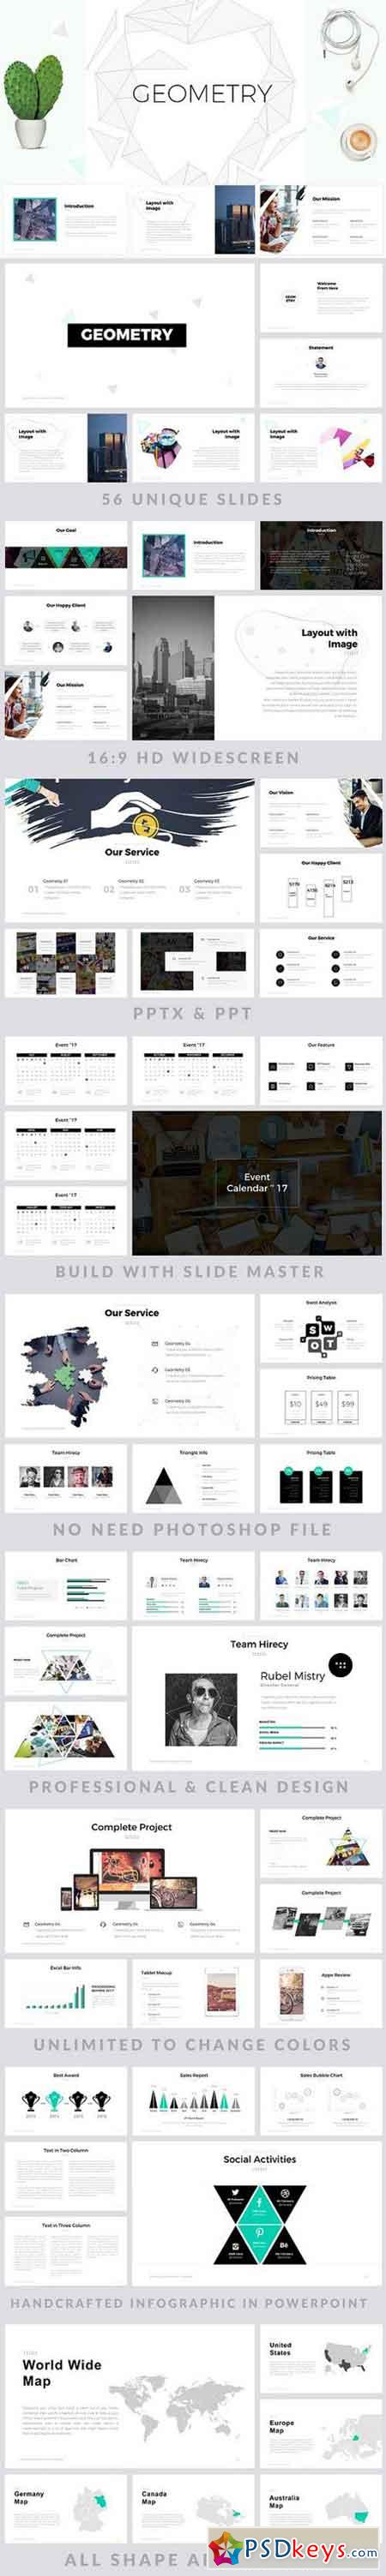 Geometric PowerPoint Template 1250404